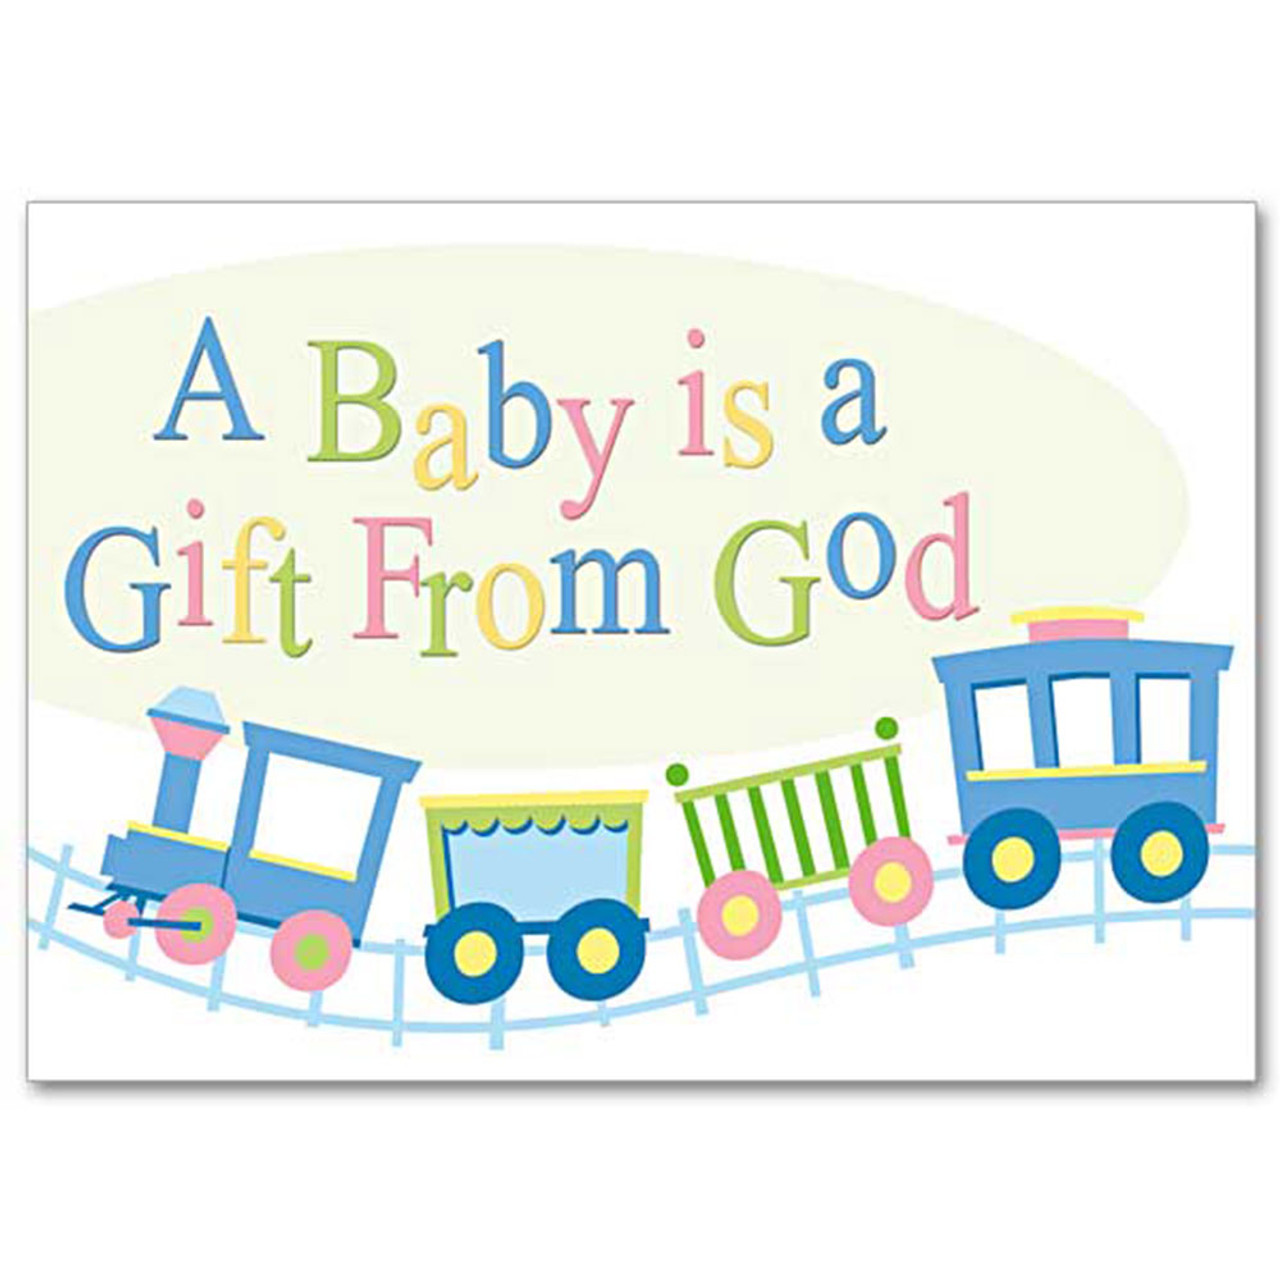 New Baby Card A Baby is a Gift